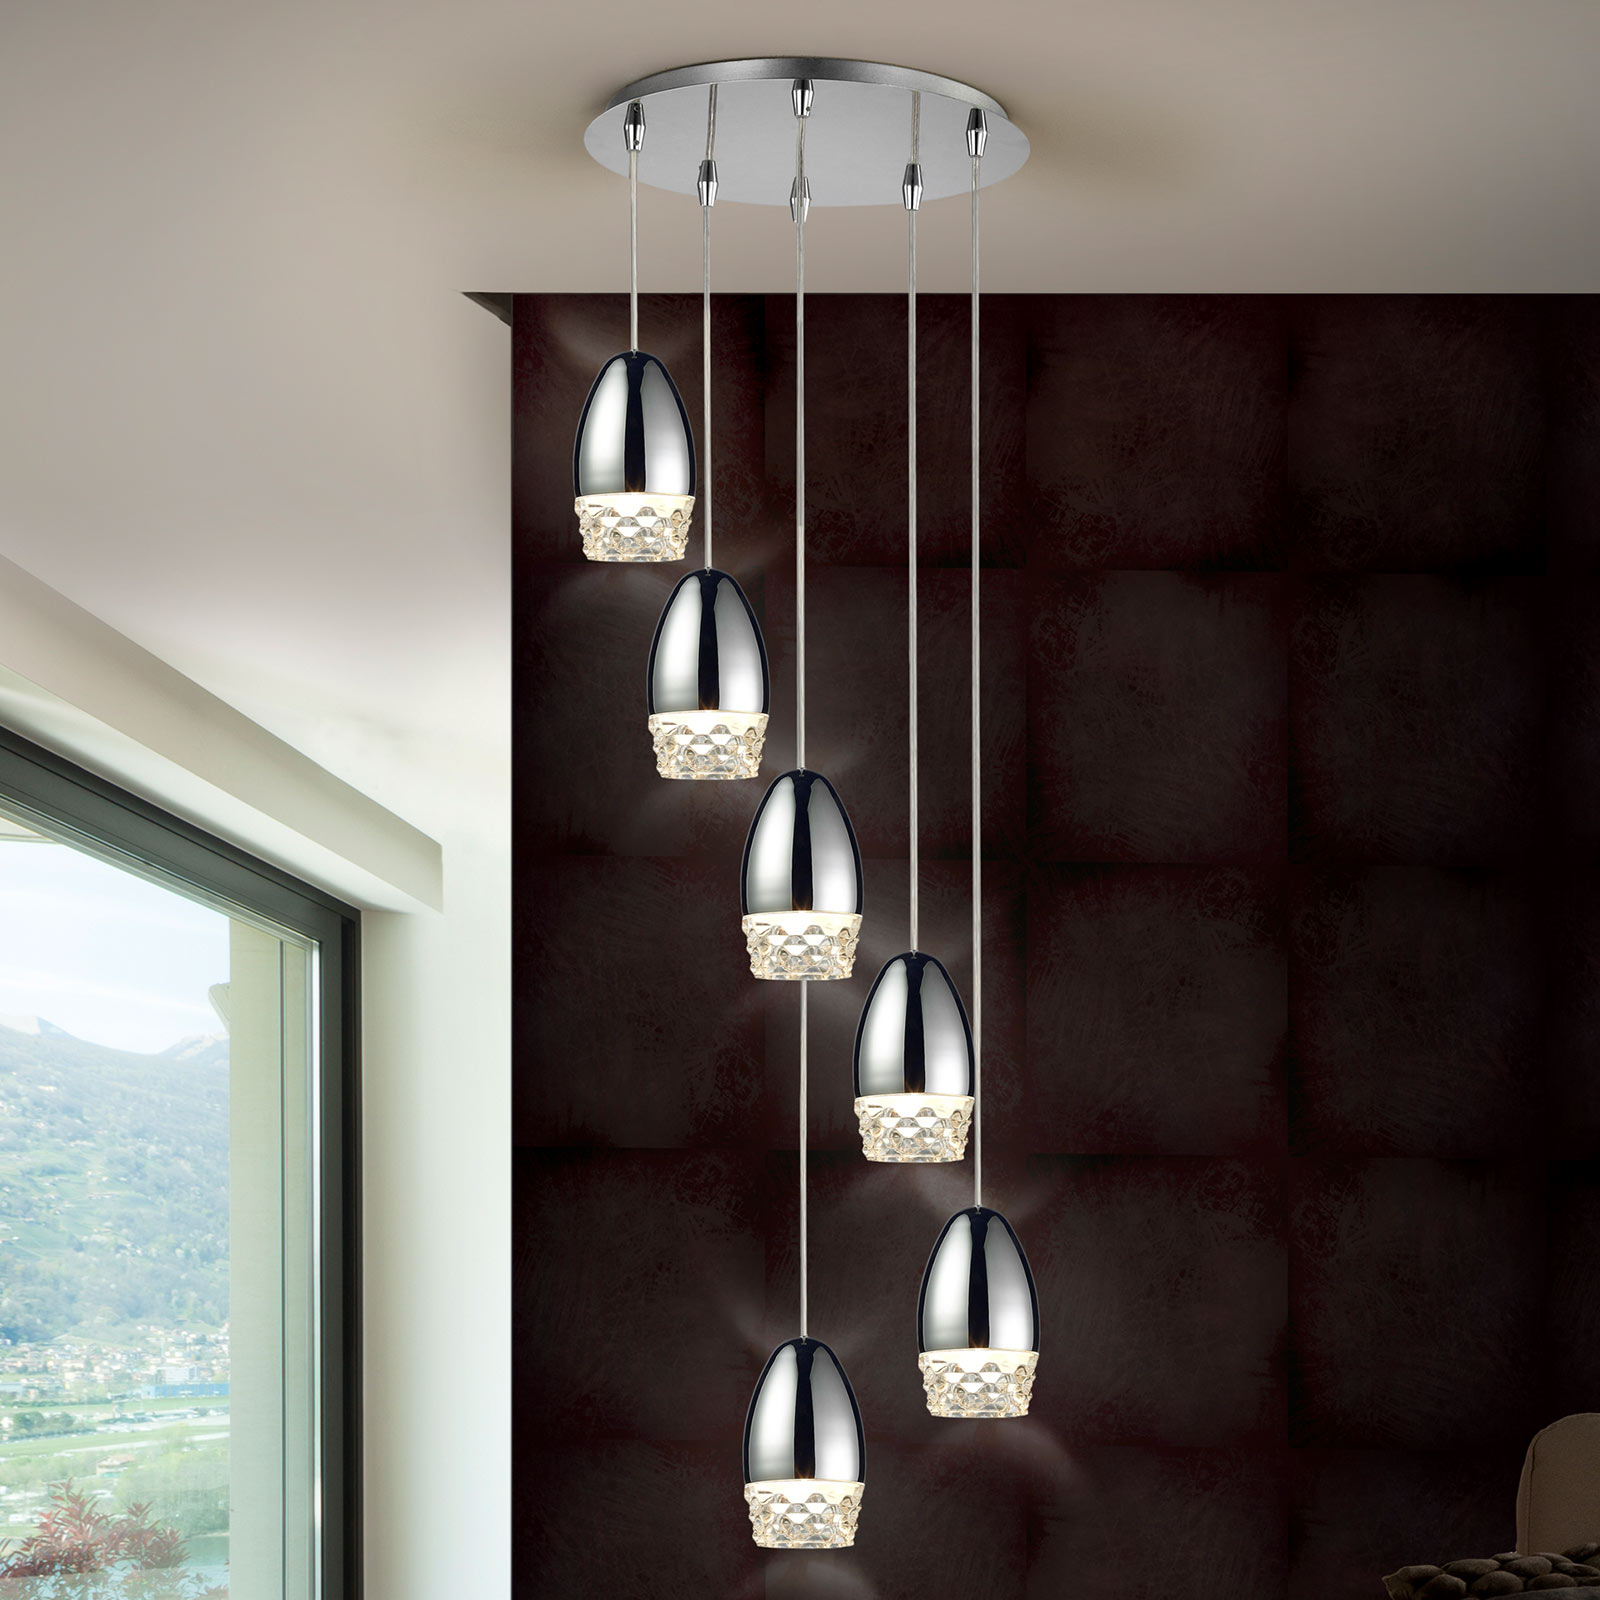 LED hanglamp Alessa, chroom, 6-lamps